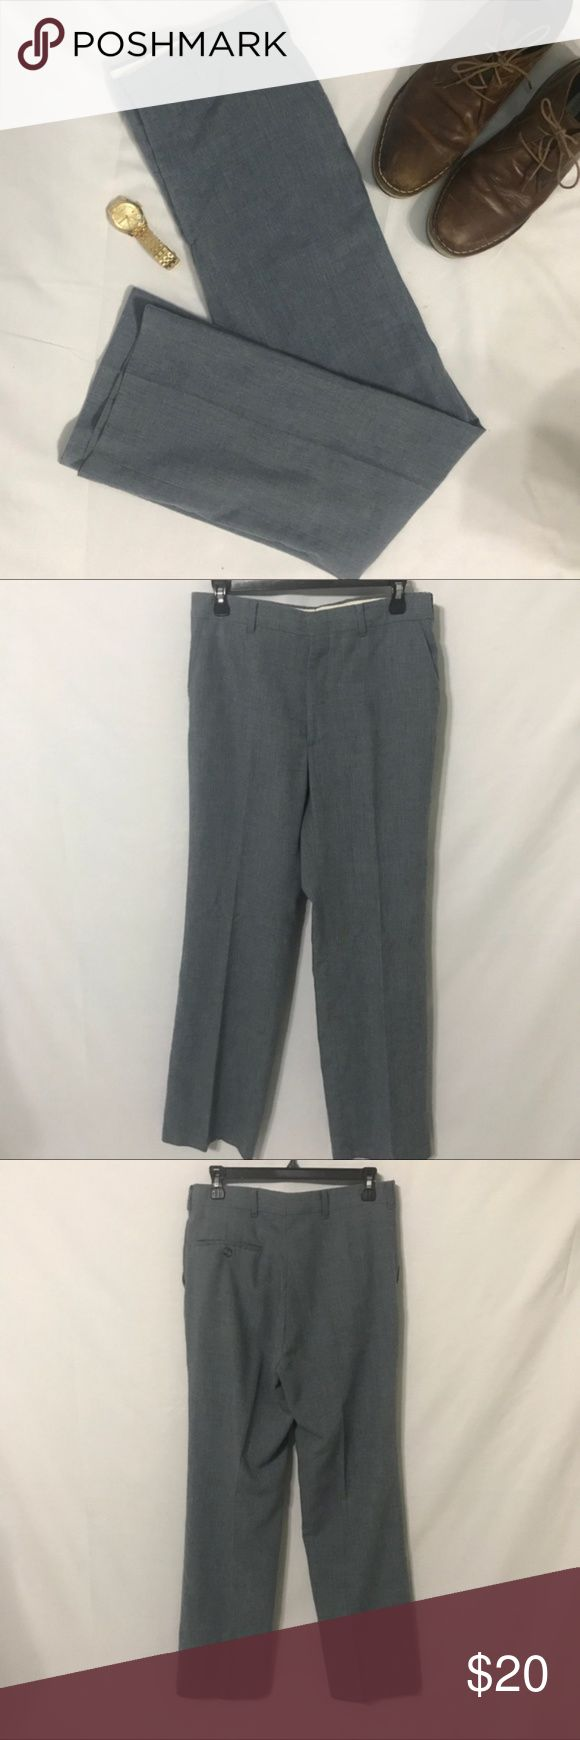 """Chambray Linen Blend Dress Pants Big & Tall, 31x42 Lightweight and comfortable light blue linen-cotton blend dress pants. The color resembles a light denim or chambray color. These pants are from a hard to find Repp Limited Big and Tall clothing line.  In lightly worn condition One back pocket  Measurements: Waist flat 15.5"""" Waist size 31"""" Inseam 31"""" Outseam 42"""" Rise 11"""" Repp Ltd. Pants Dress"""